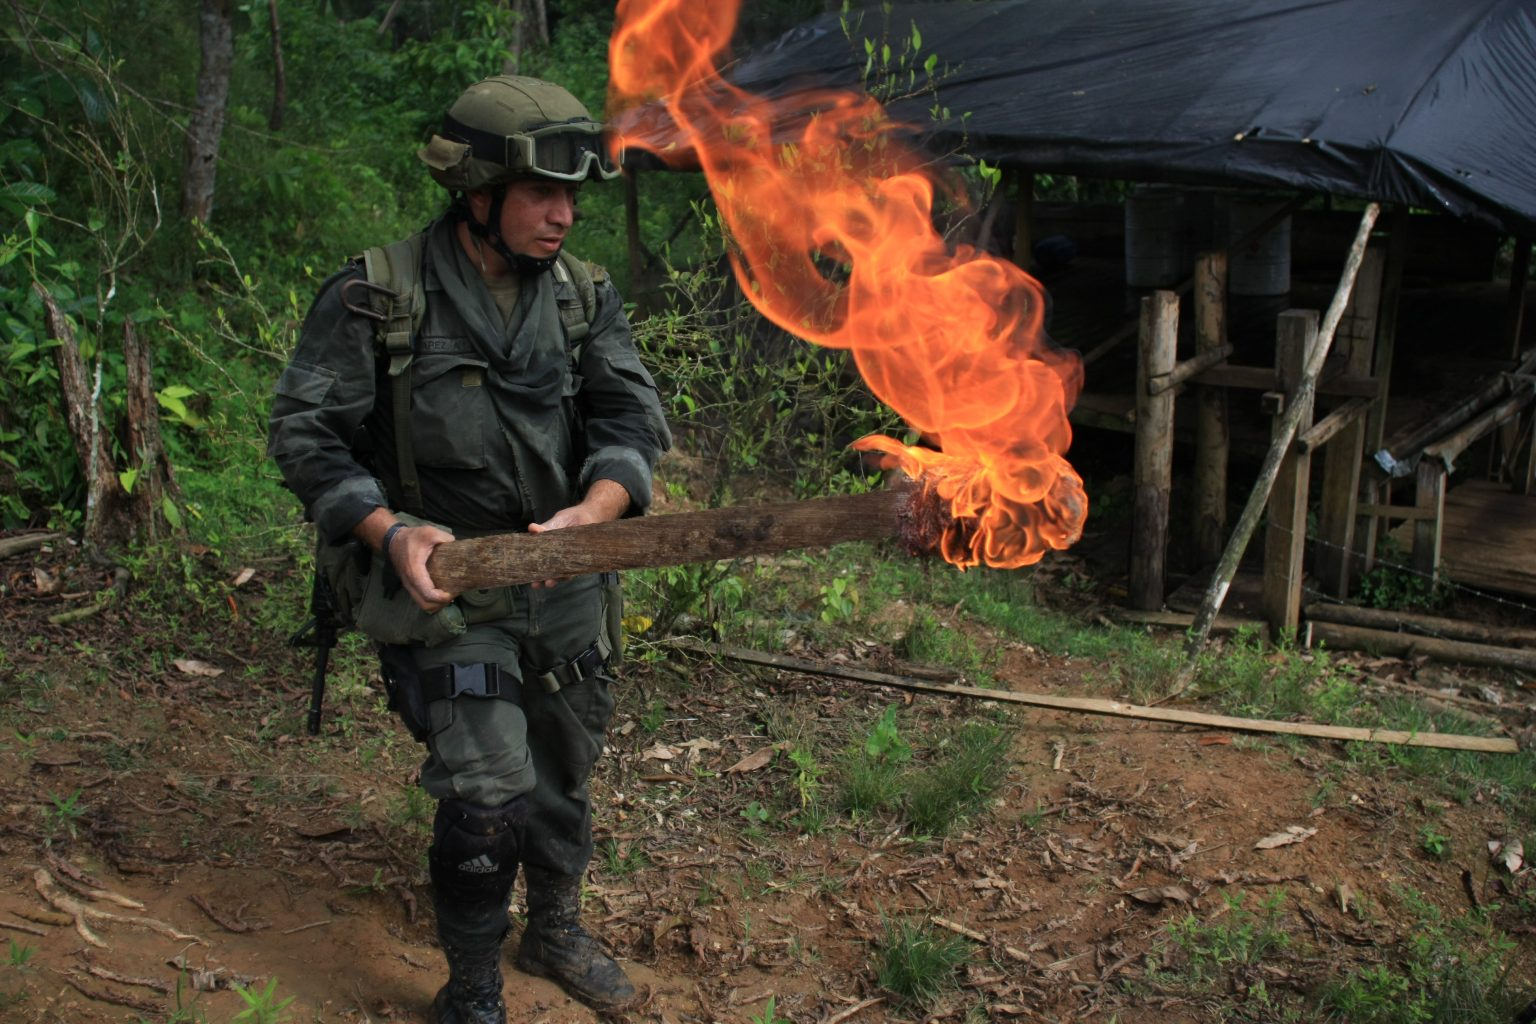 Anti-narcotics police stand on guard after burning a coca laboratory near Tumaco, Colombia. (AP Photo/William Fernando Martinez)